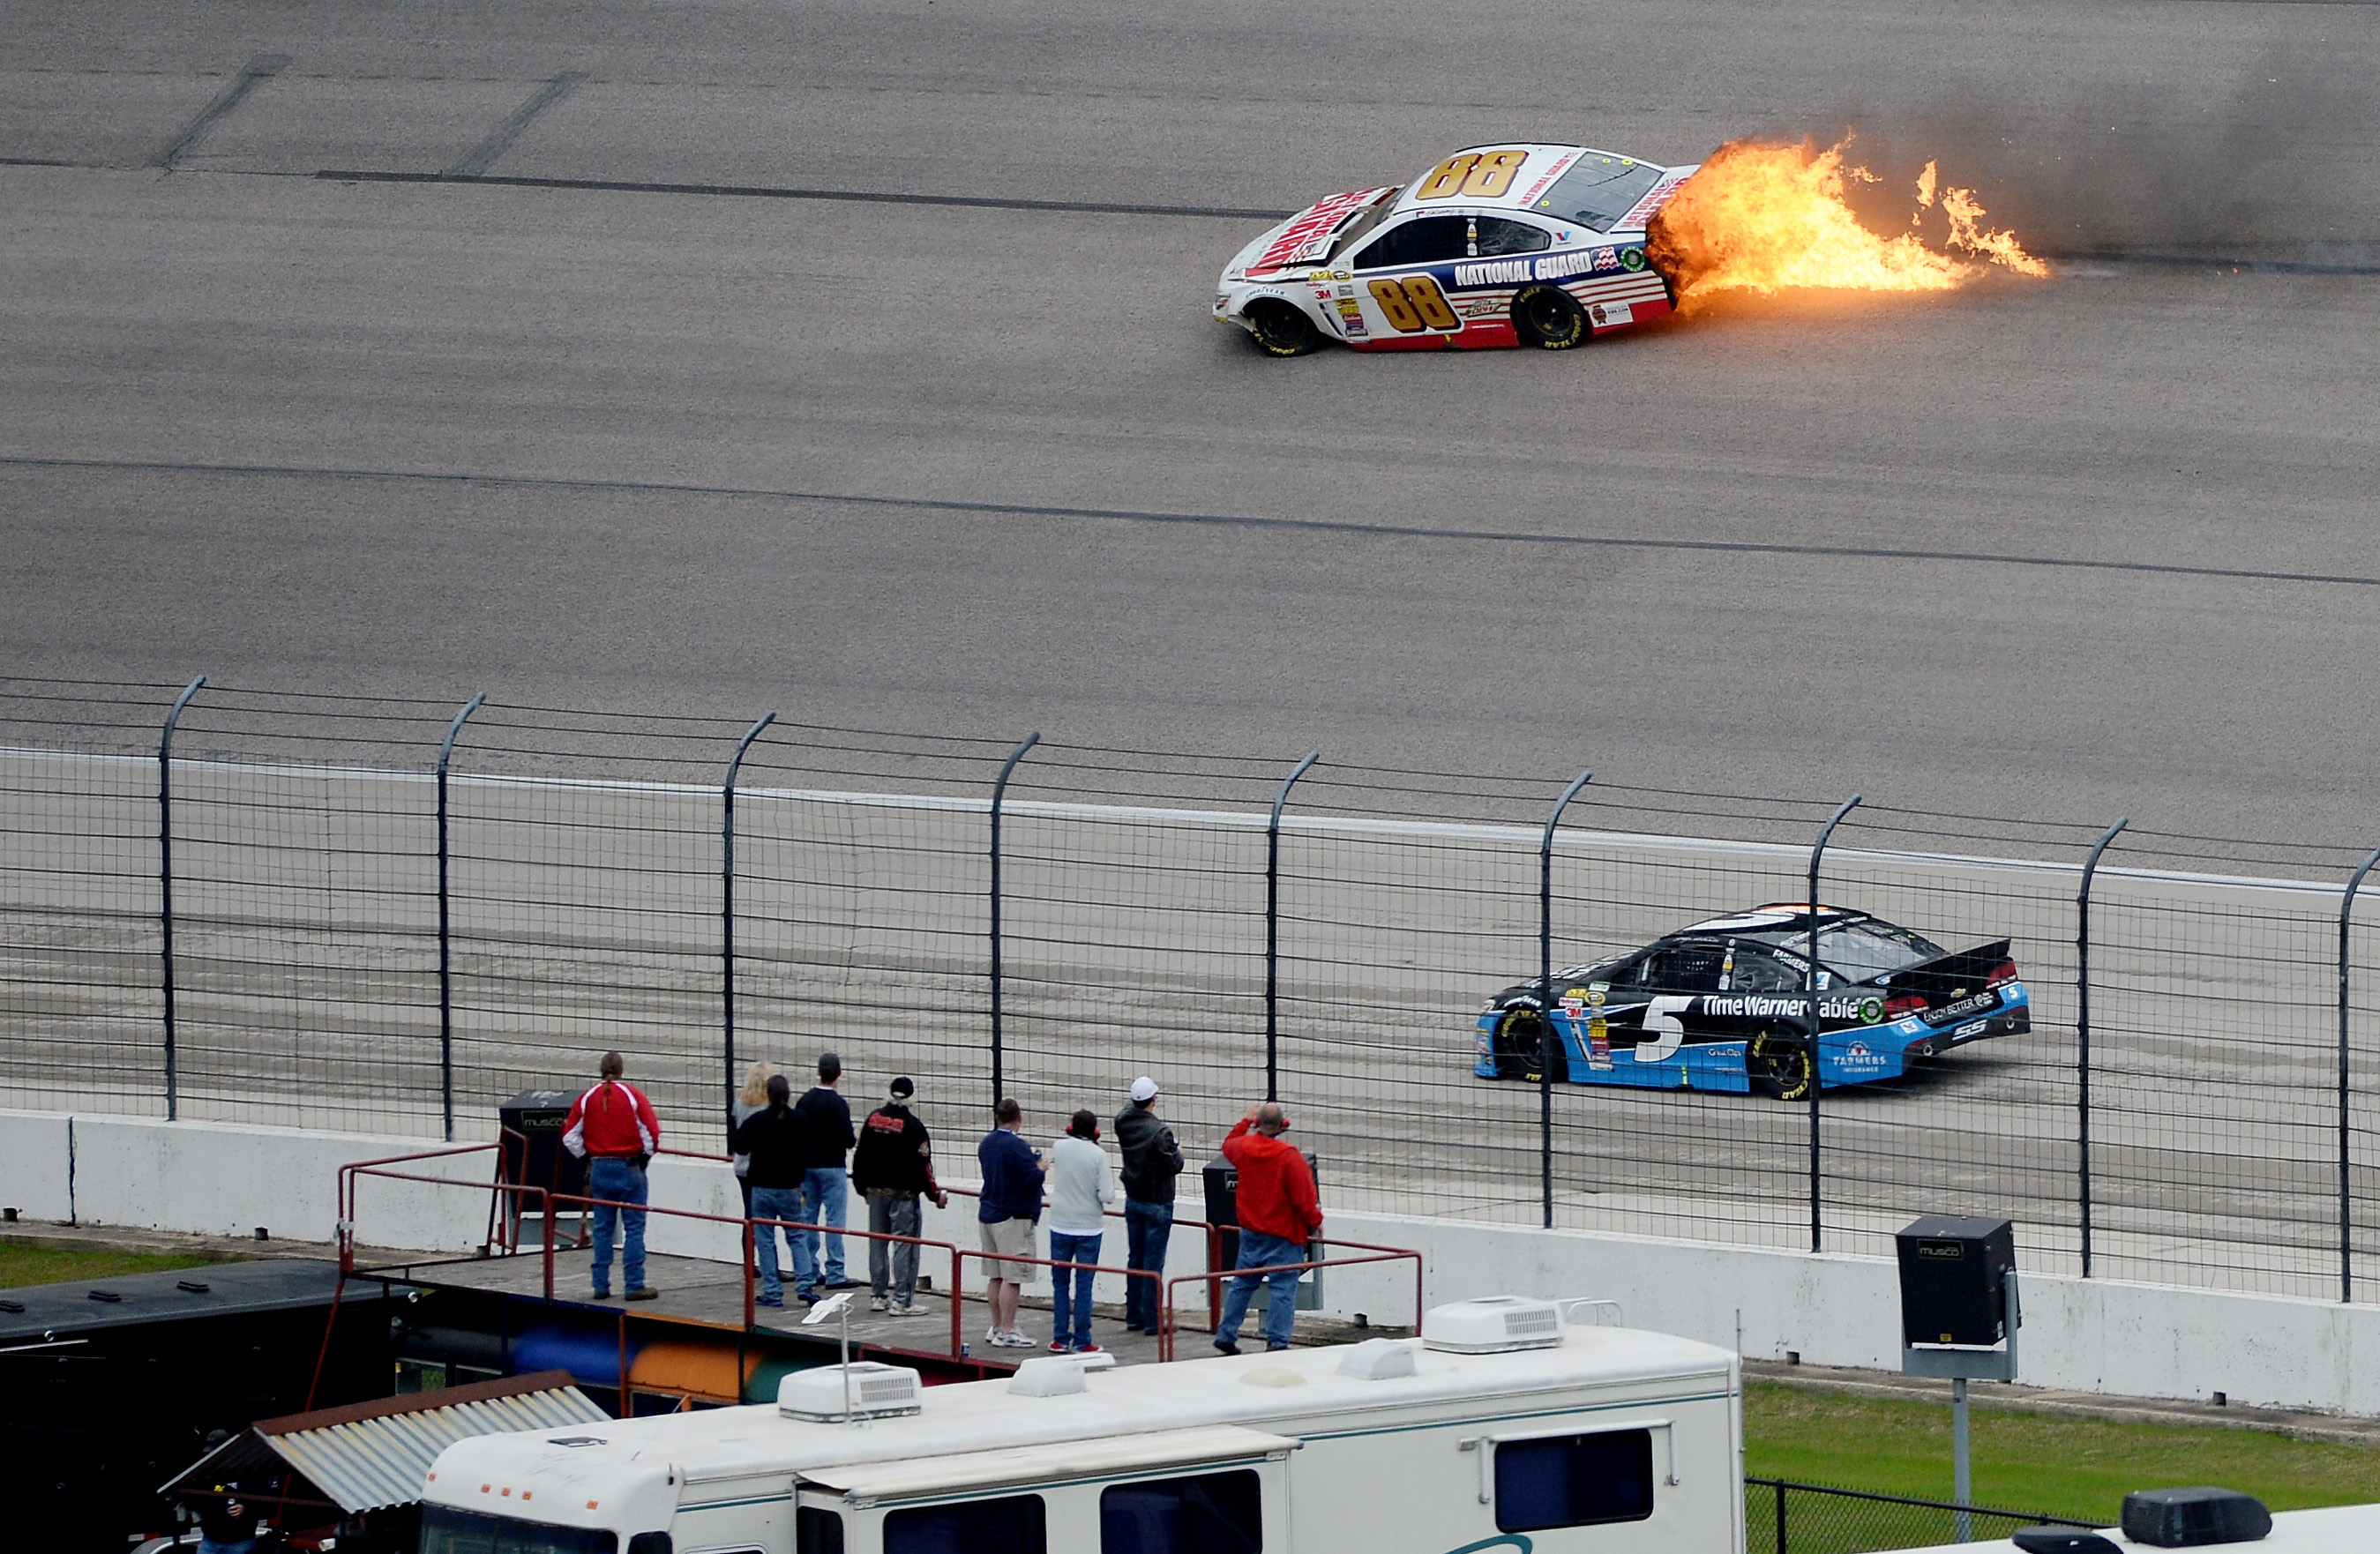 Dale Earnhardt Jr. Went From One Extreme to Another When Treating Concussions